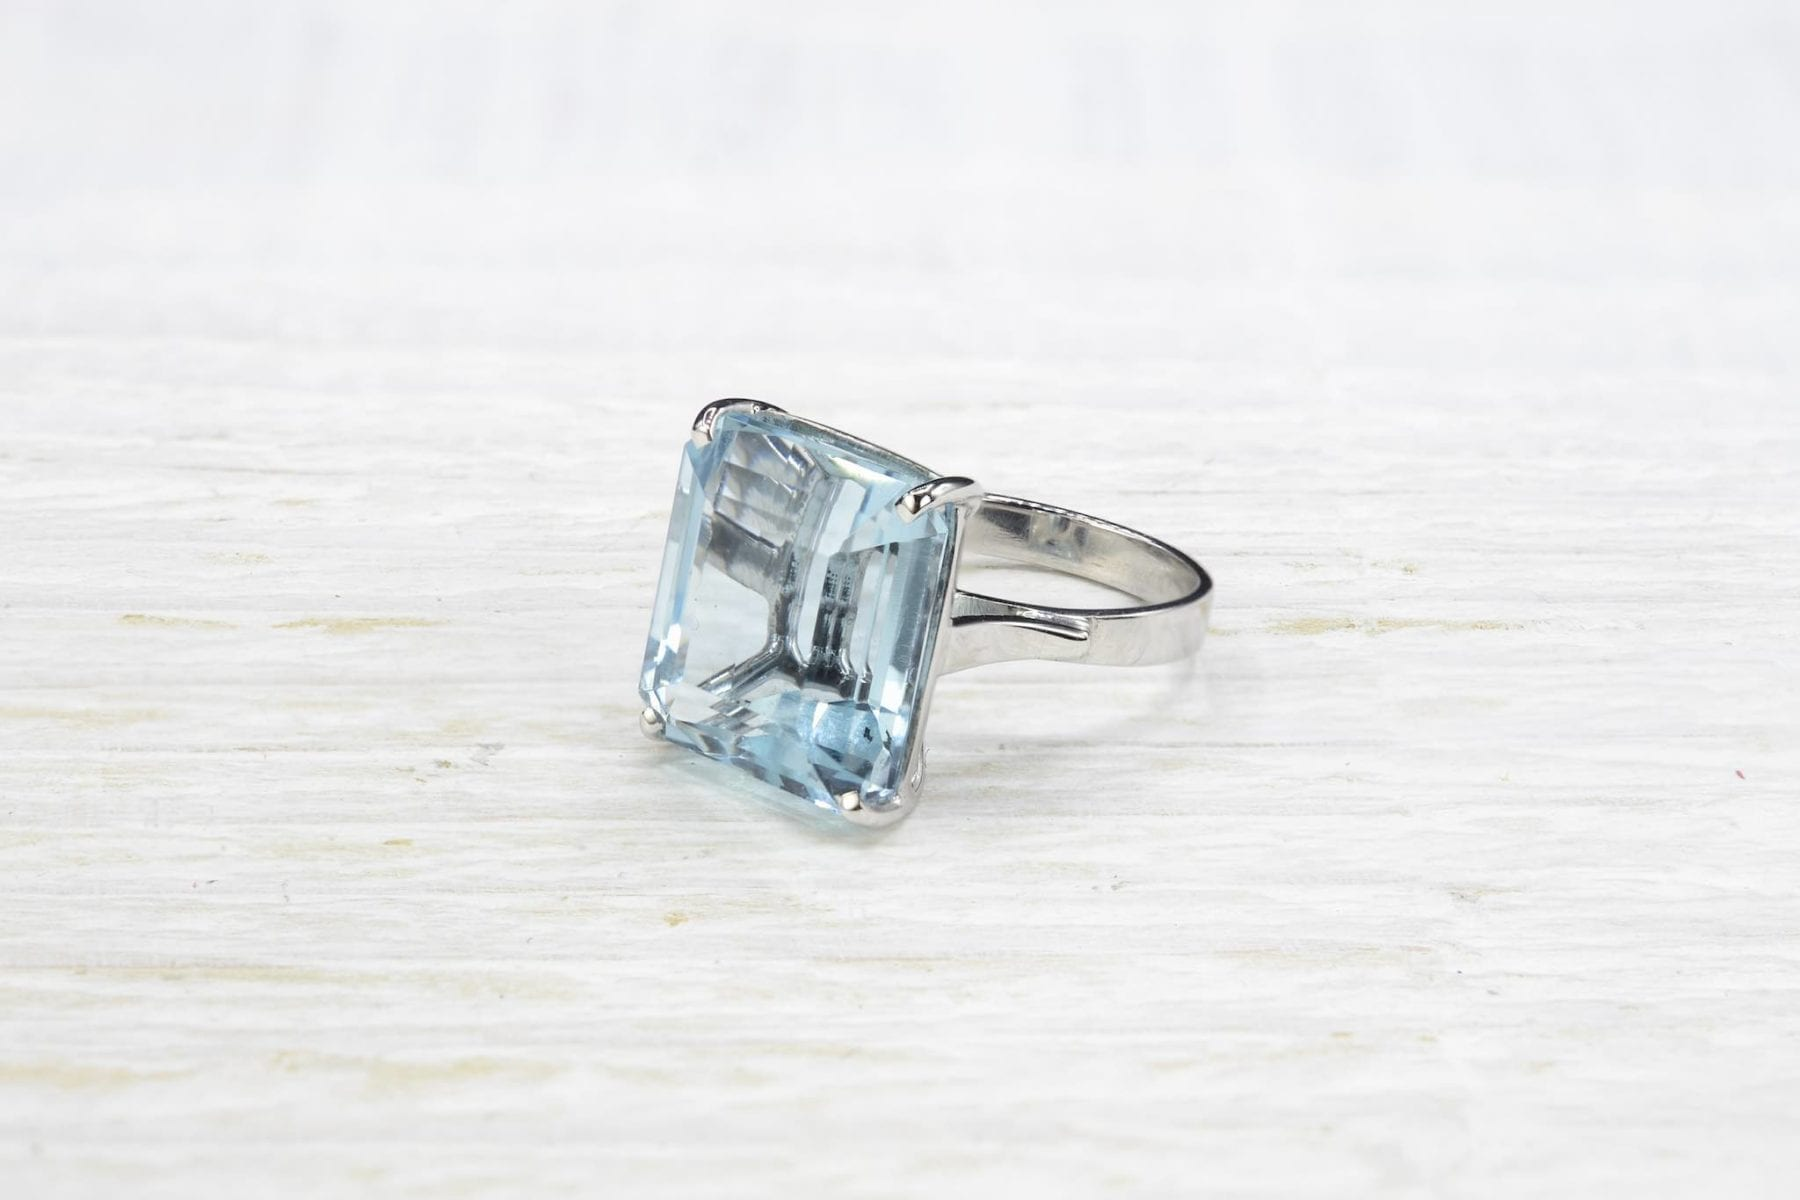 aquamarine in 18k white gold ring